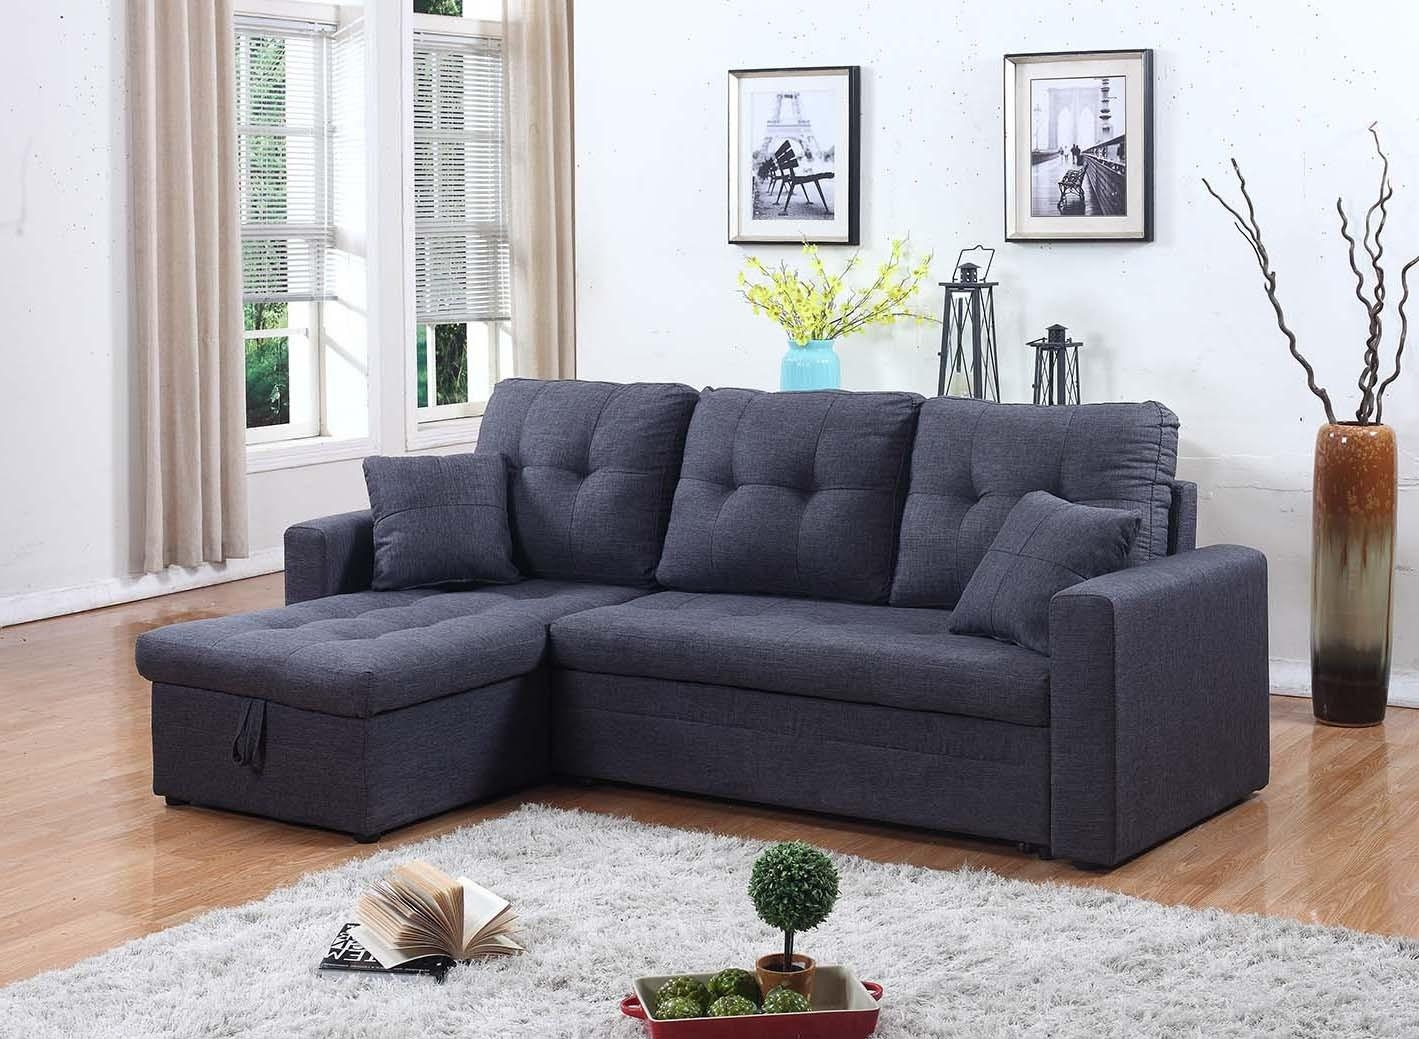 2 Pc Gray Fabric Sectional With Storage Chaise And Pull Out Bed Within Pull Out Sectional (View 12 of 20)